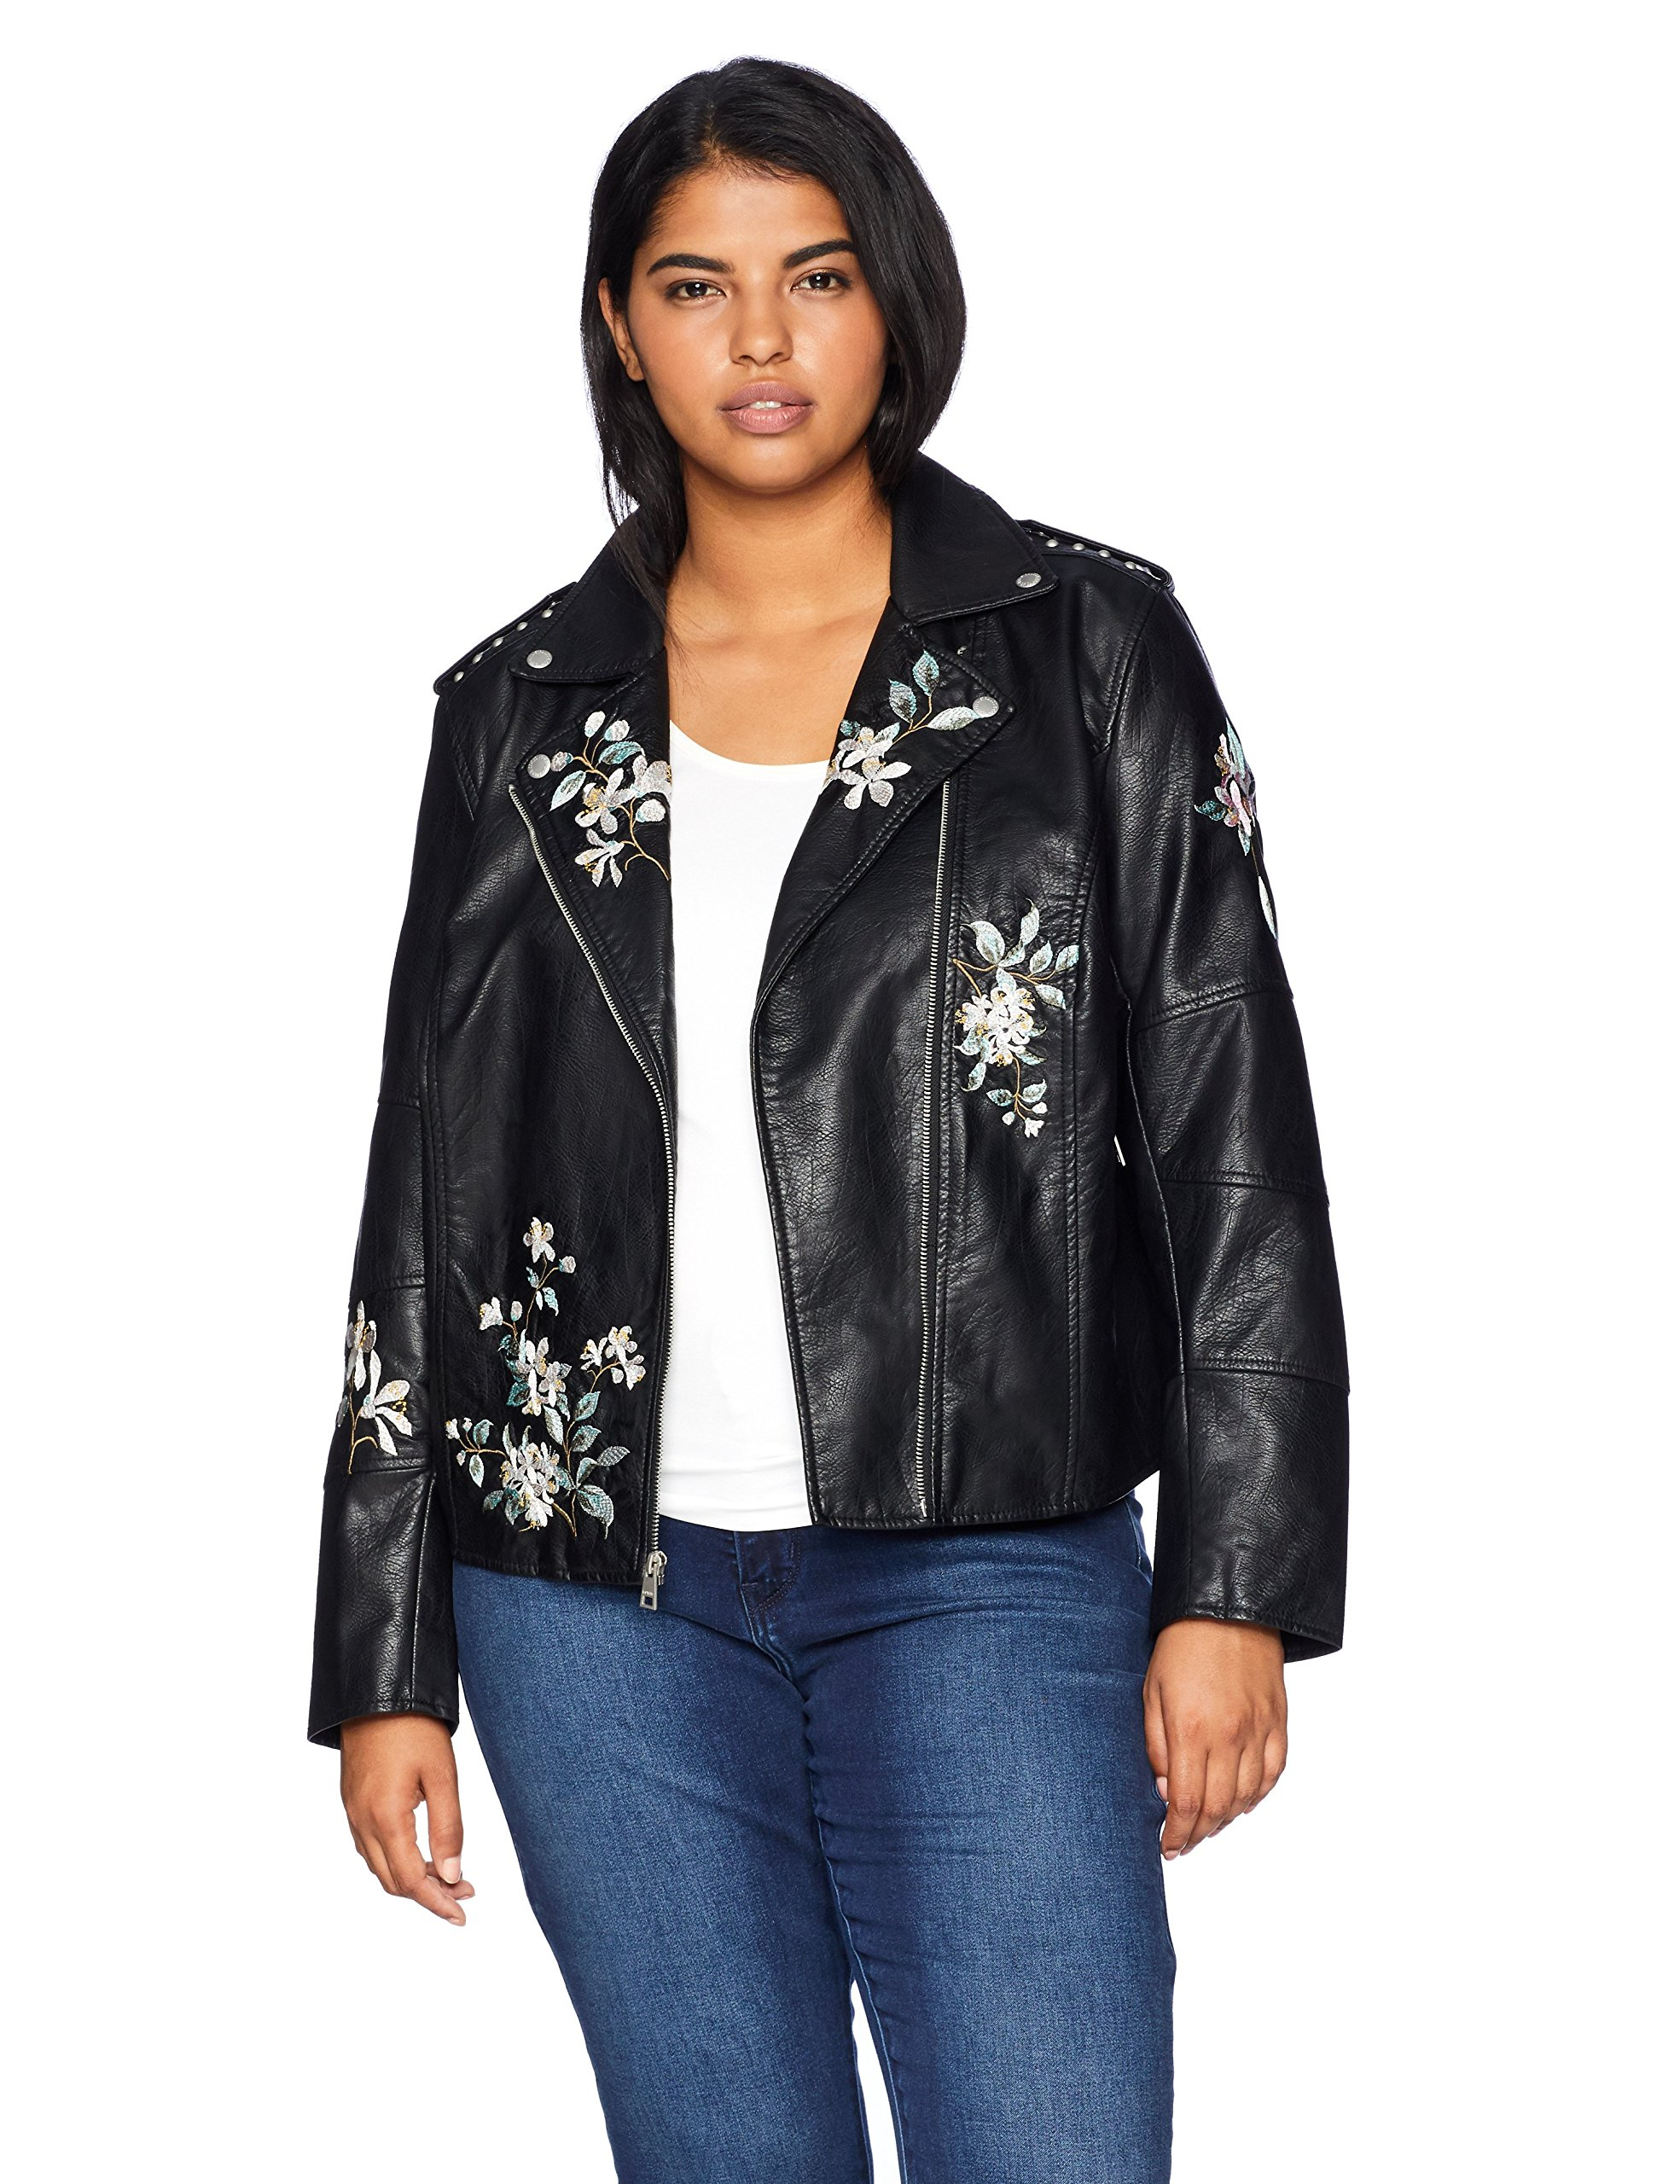 Levi's Women's Plus Size Faux Leather Embroidered Motorcyle Jacket, Black, 3X